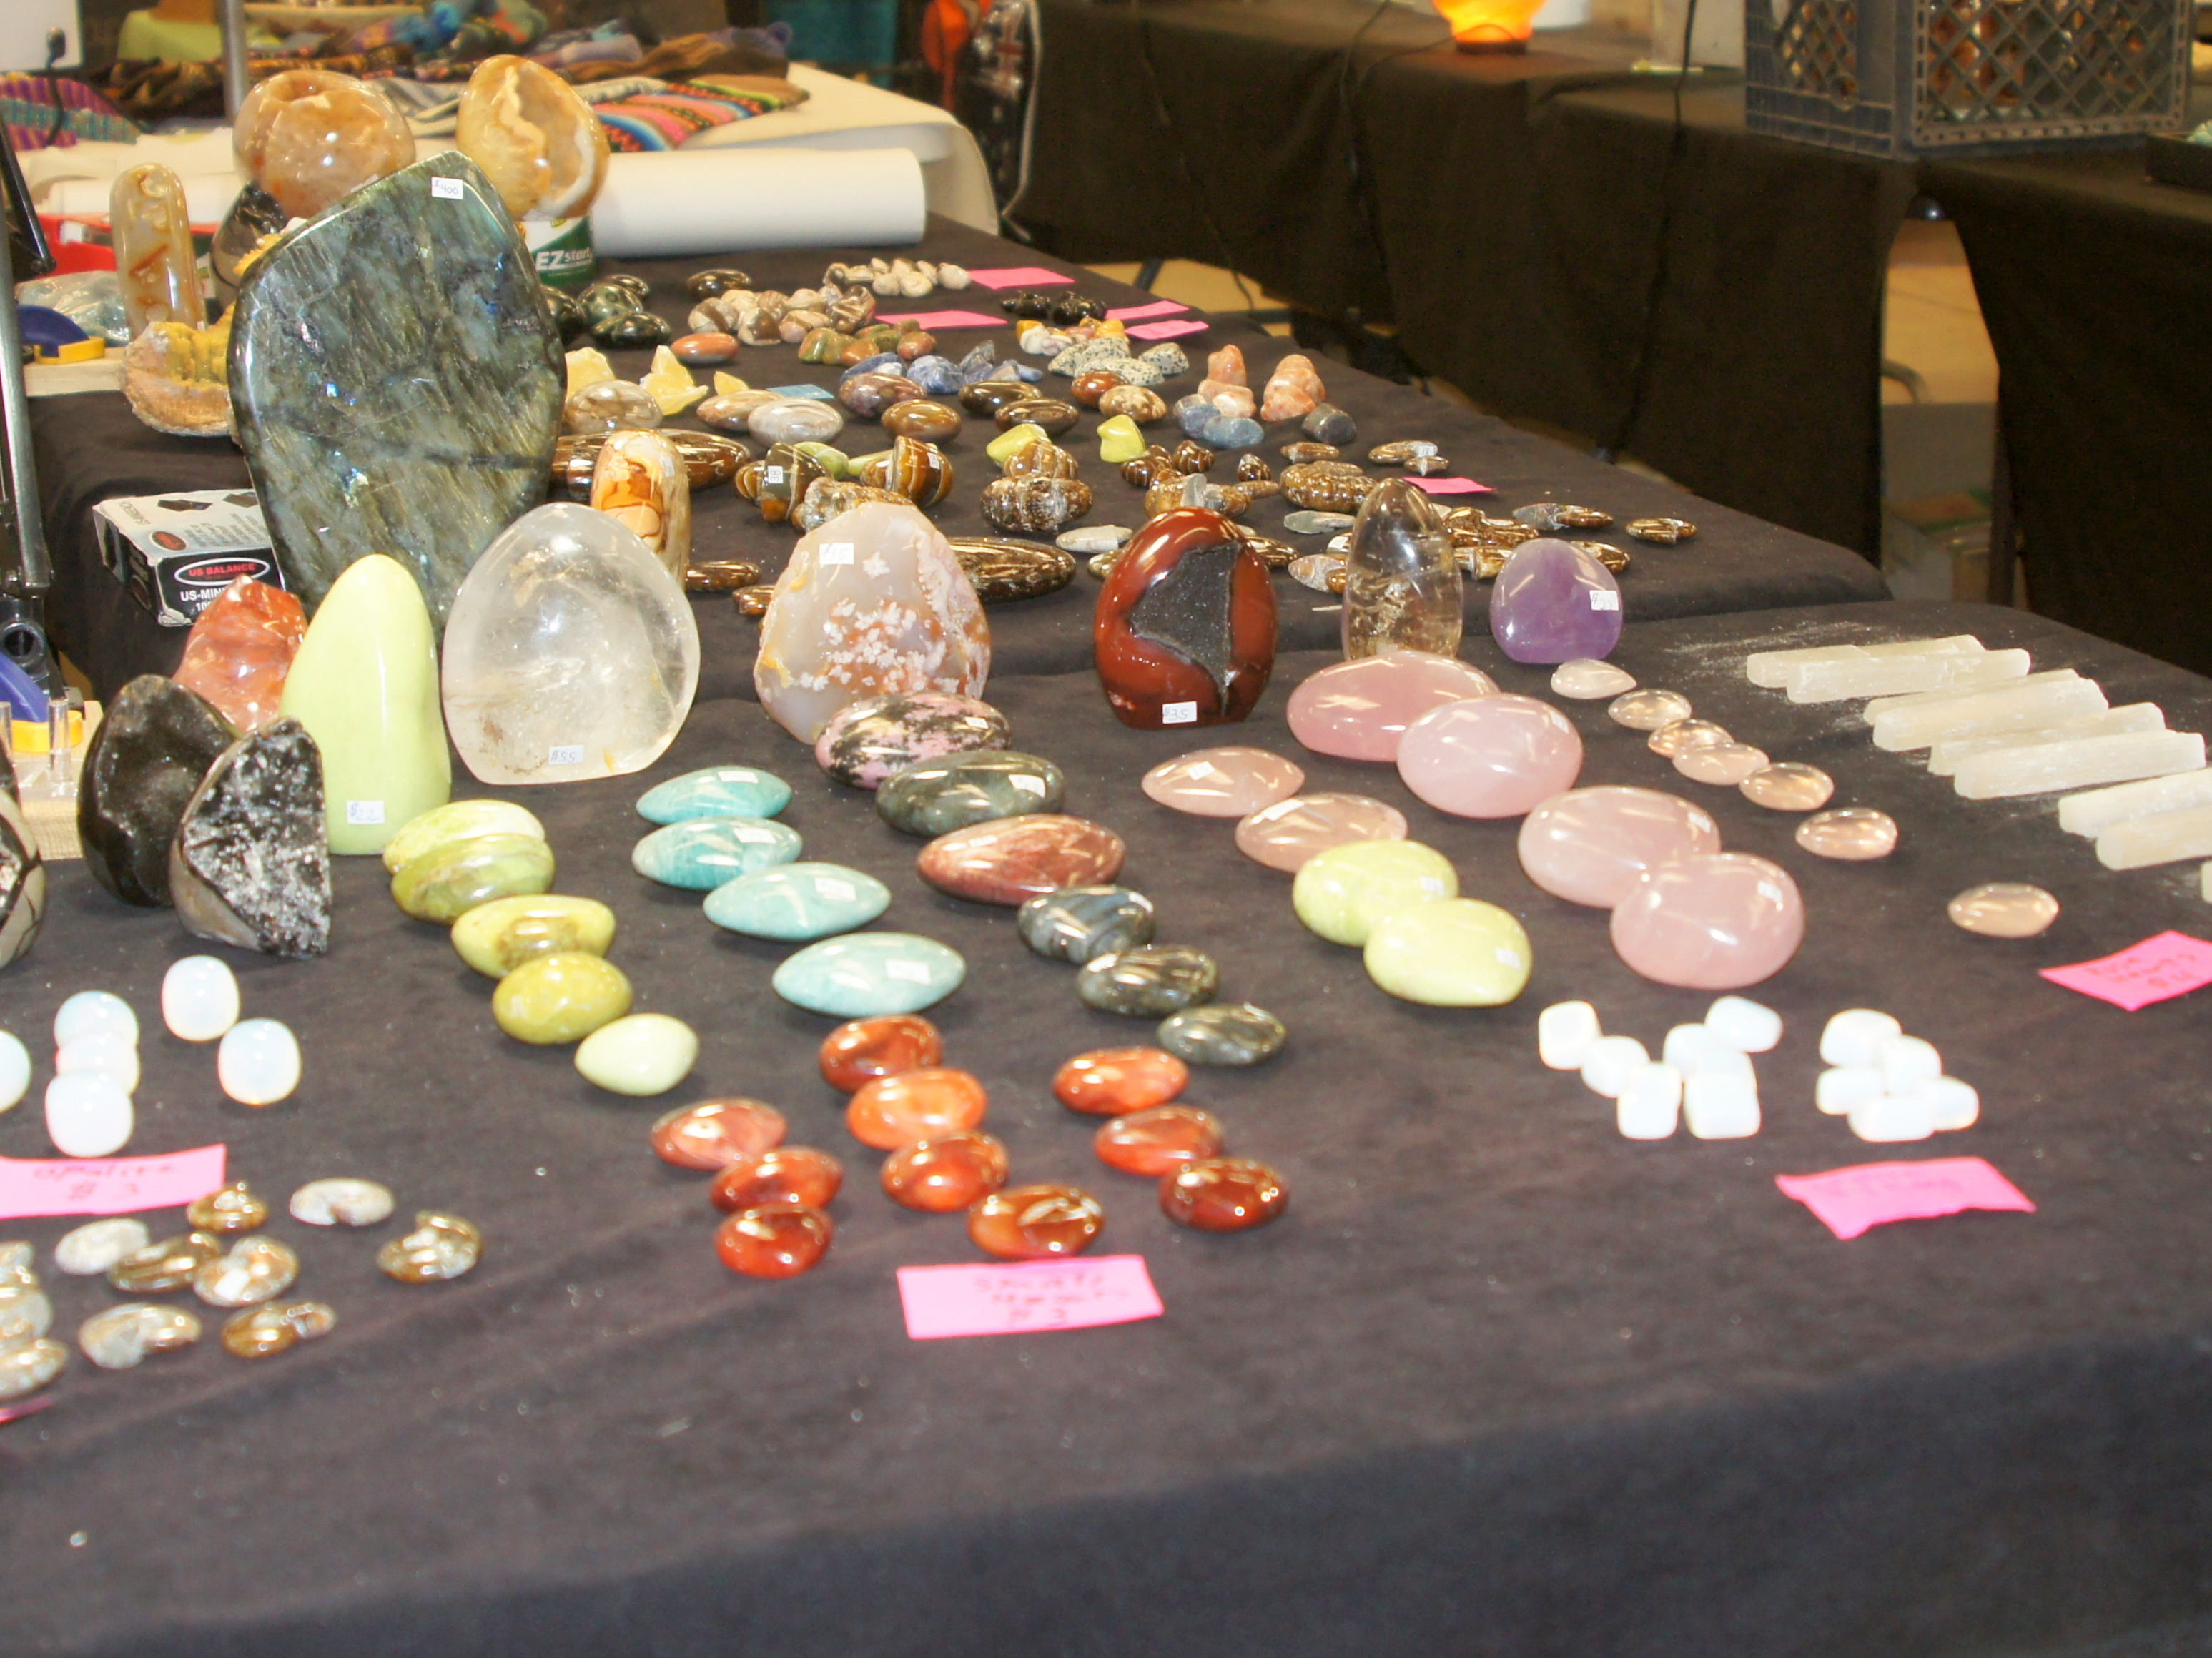 The 54th annual Rockhound Roundup drew 120 vendors from all over the country for the four-day event in Deming, NM.